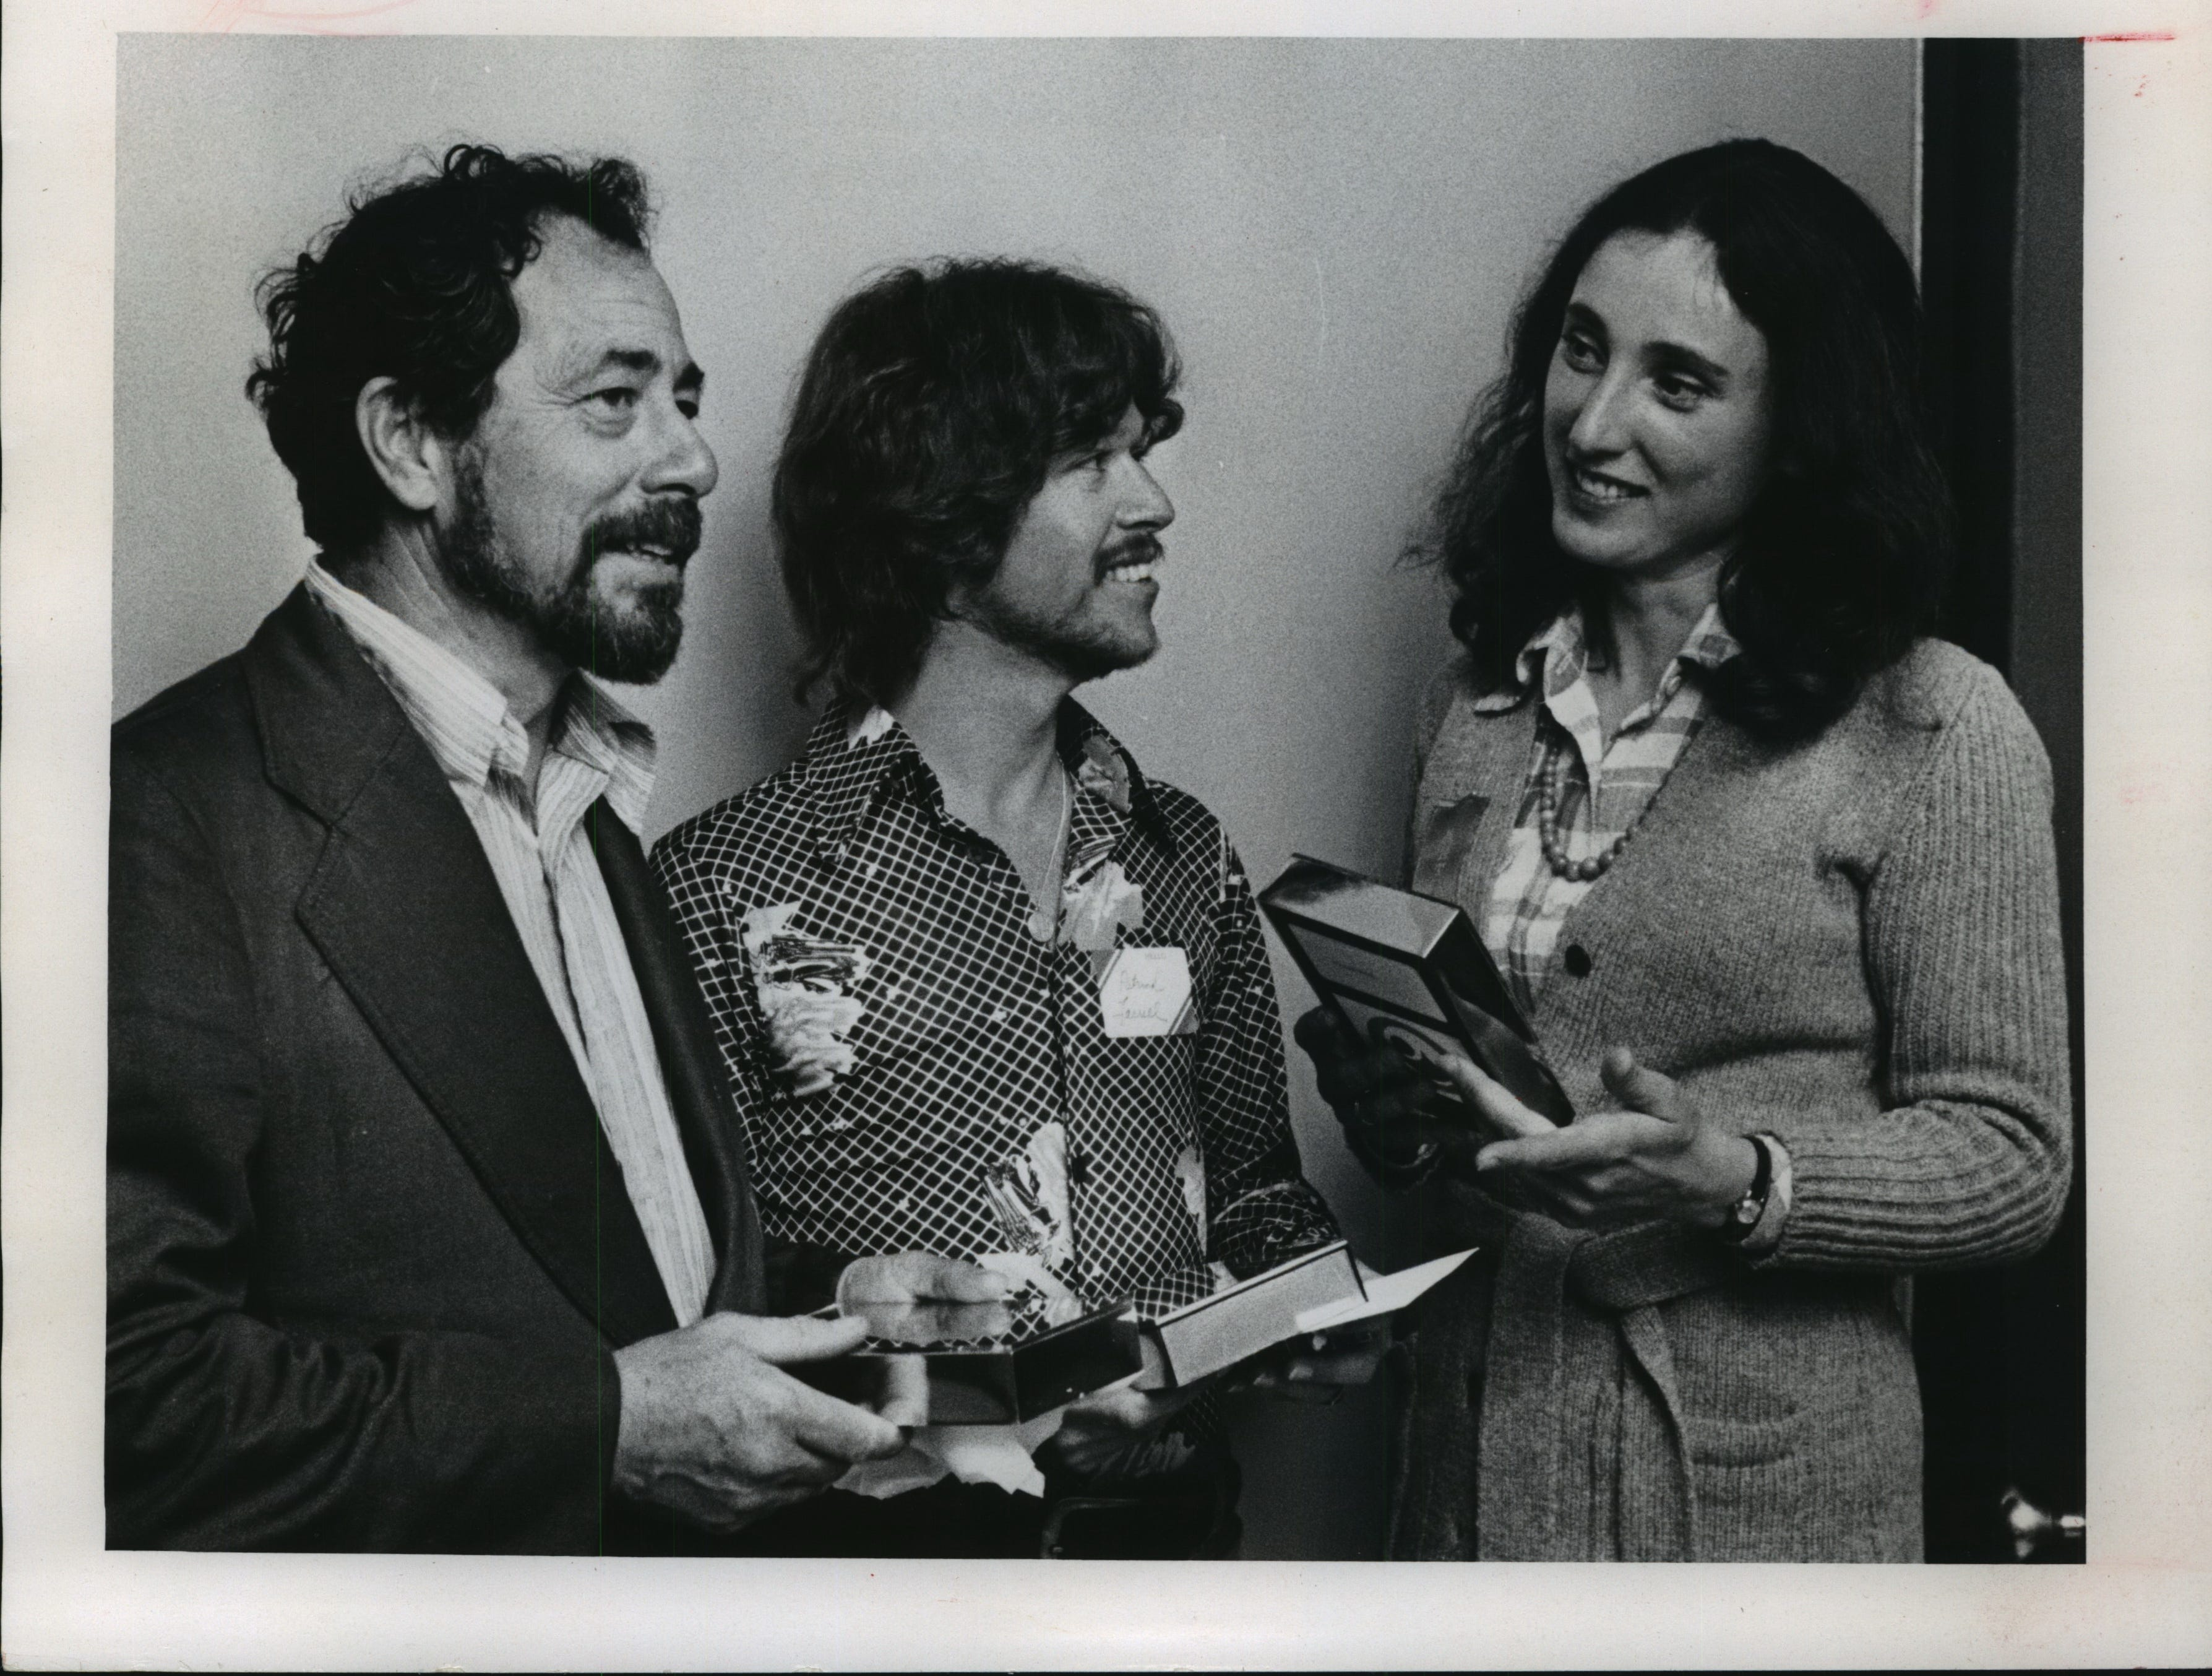 1974: The husband-and-wife team of Warrington Colescott (left) and Frances Myers, Madison, received two of the 10 cash awards given at the artists' award dinner at the Milwaukee Art Center. They were congratulated by Milwaukee artist Patrick Farrell (center), whose oil painting was selected as the 1974 Lakefront Festival of Arts purchase award.